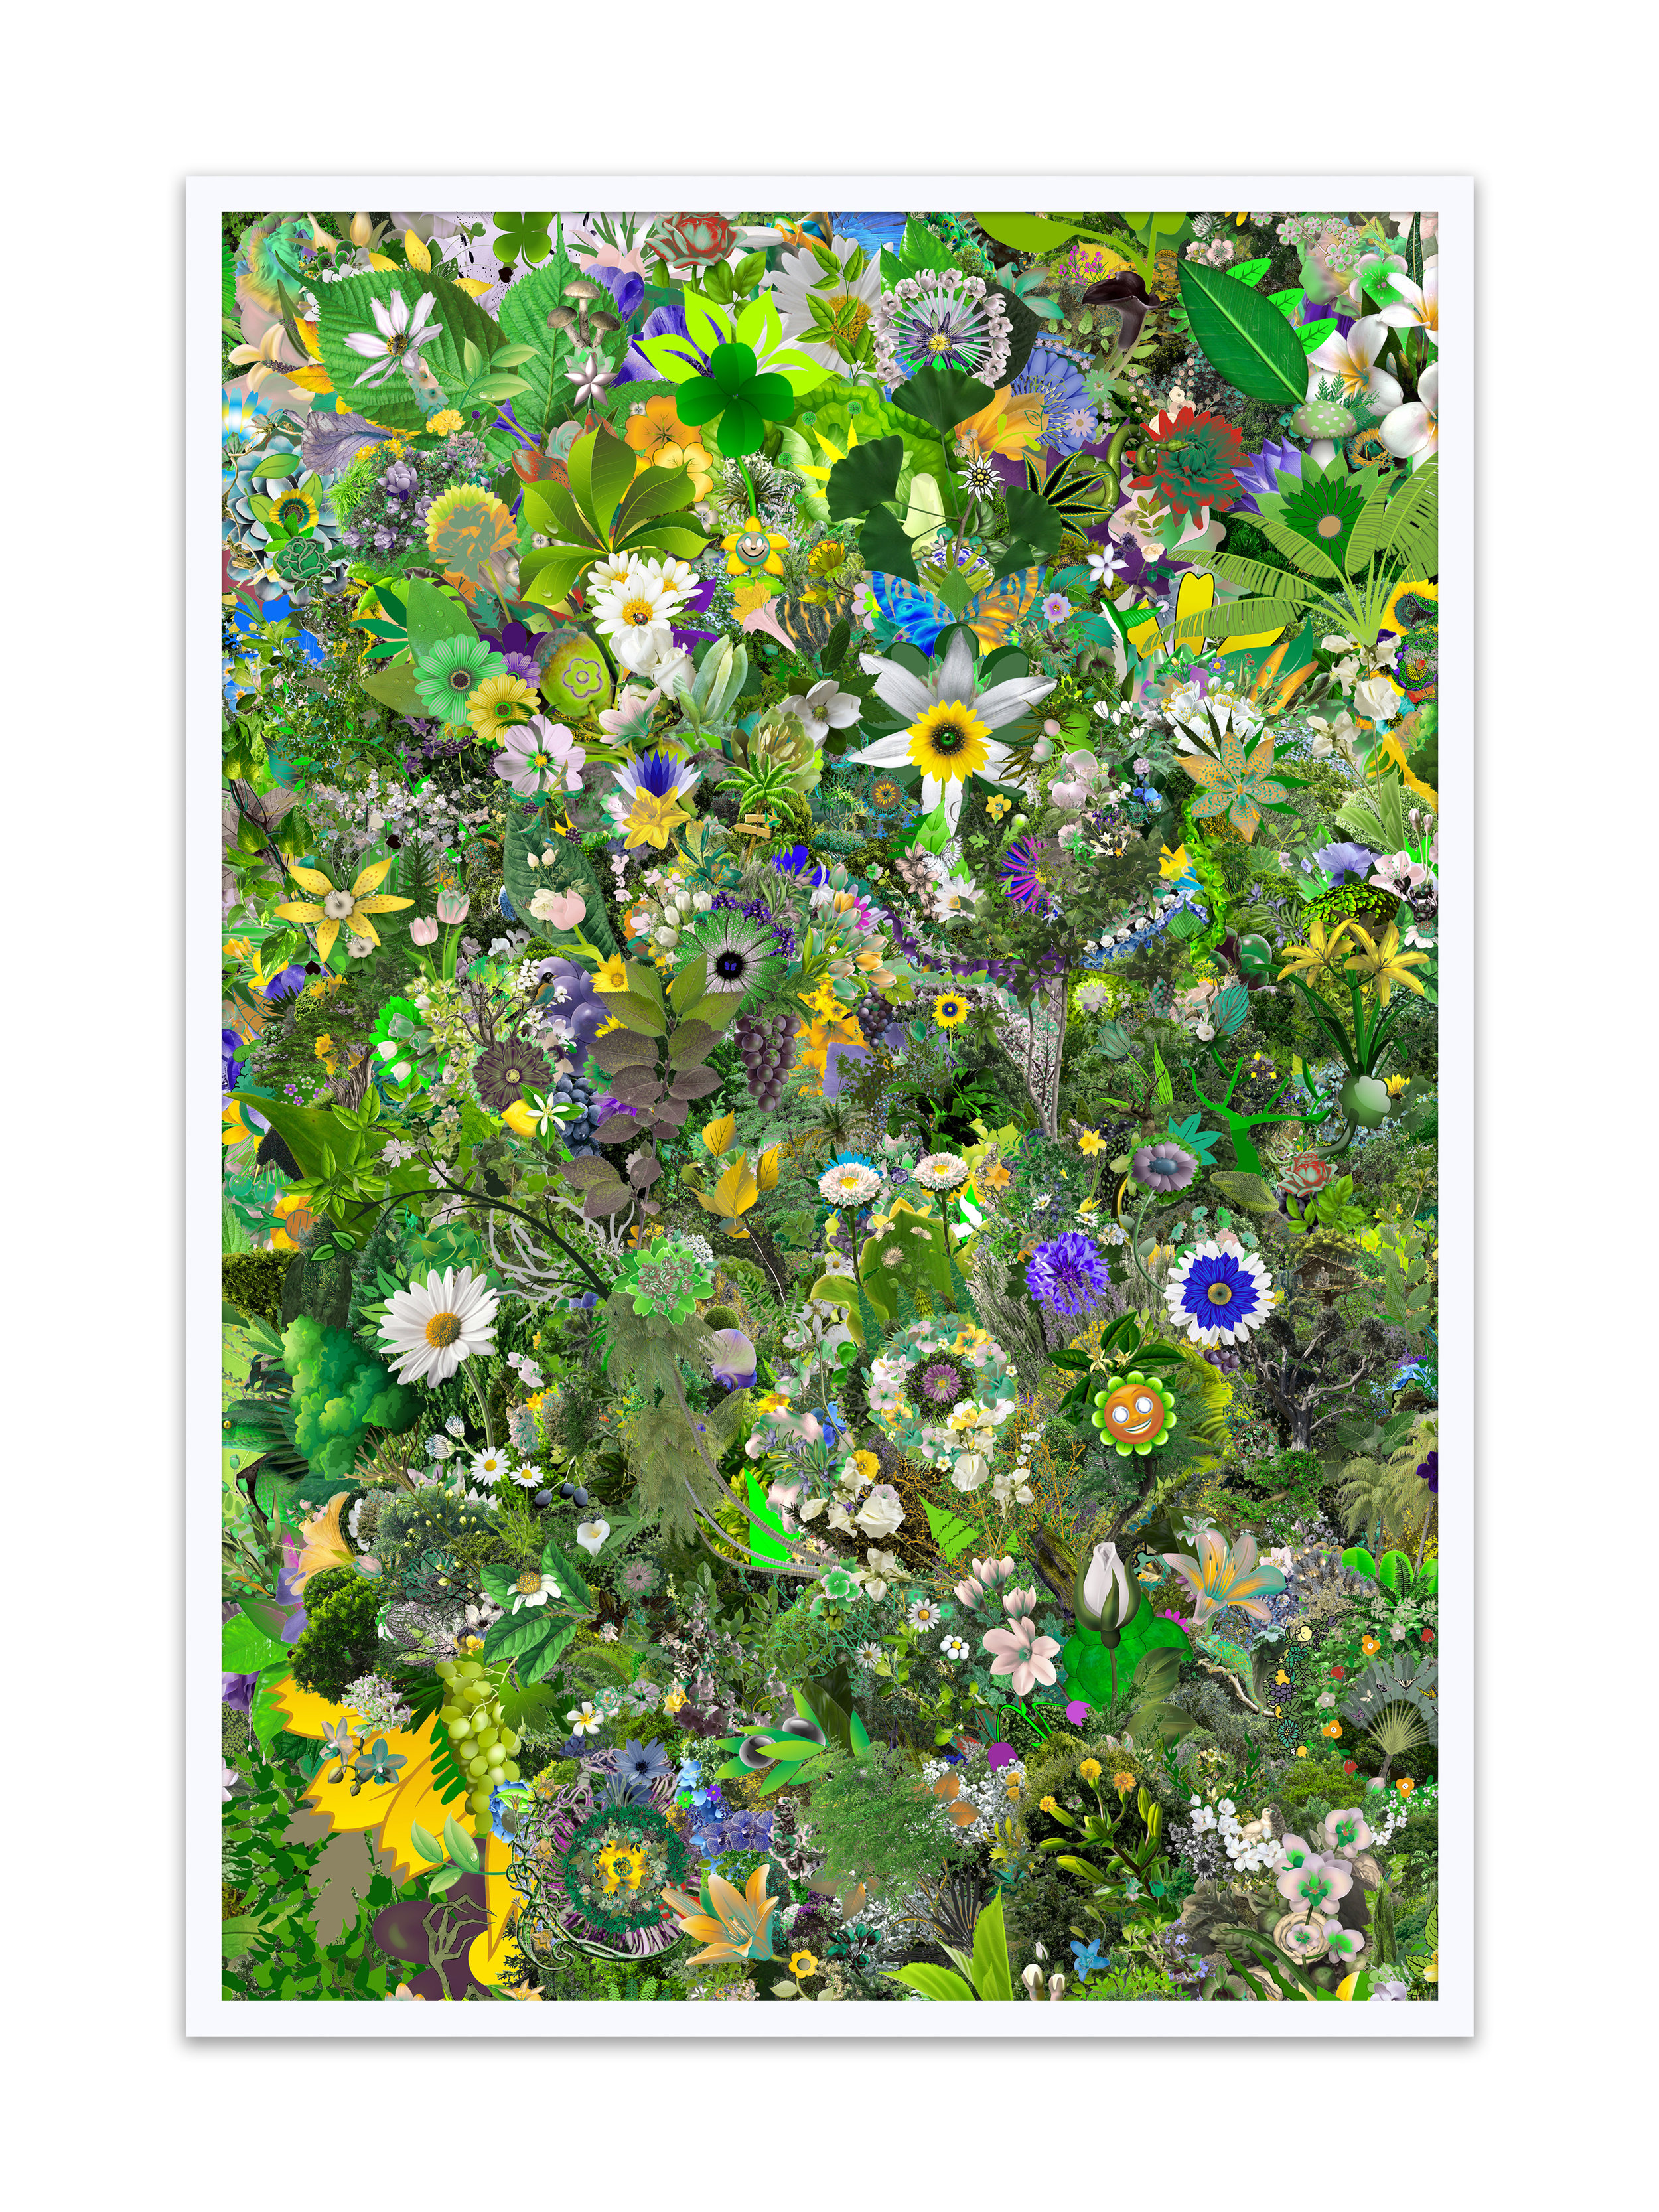 Case Simmons, Trees Y, Pigment Print, Digital Collage, Digital Art, Photoshop Collage, Contemporary Collage, M+B Gallery, Los Angeles, Art, Fine Art